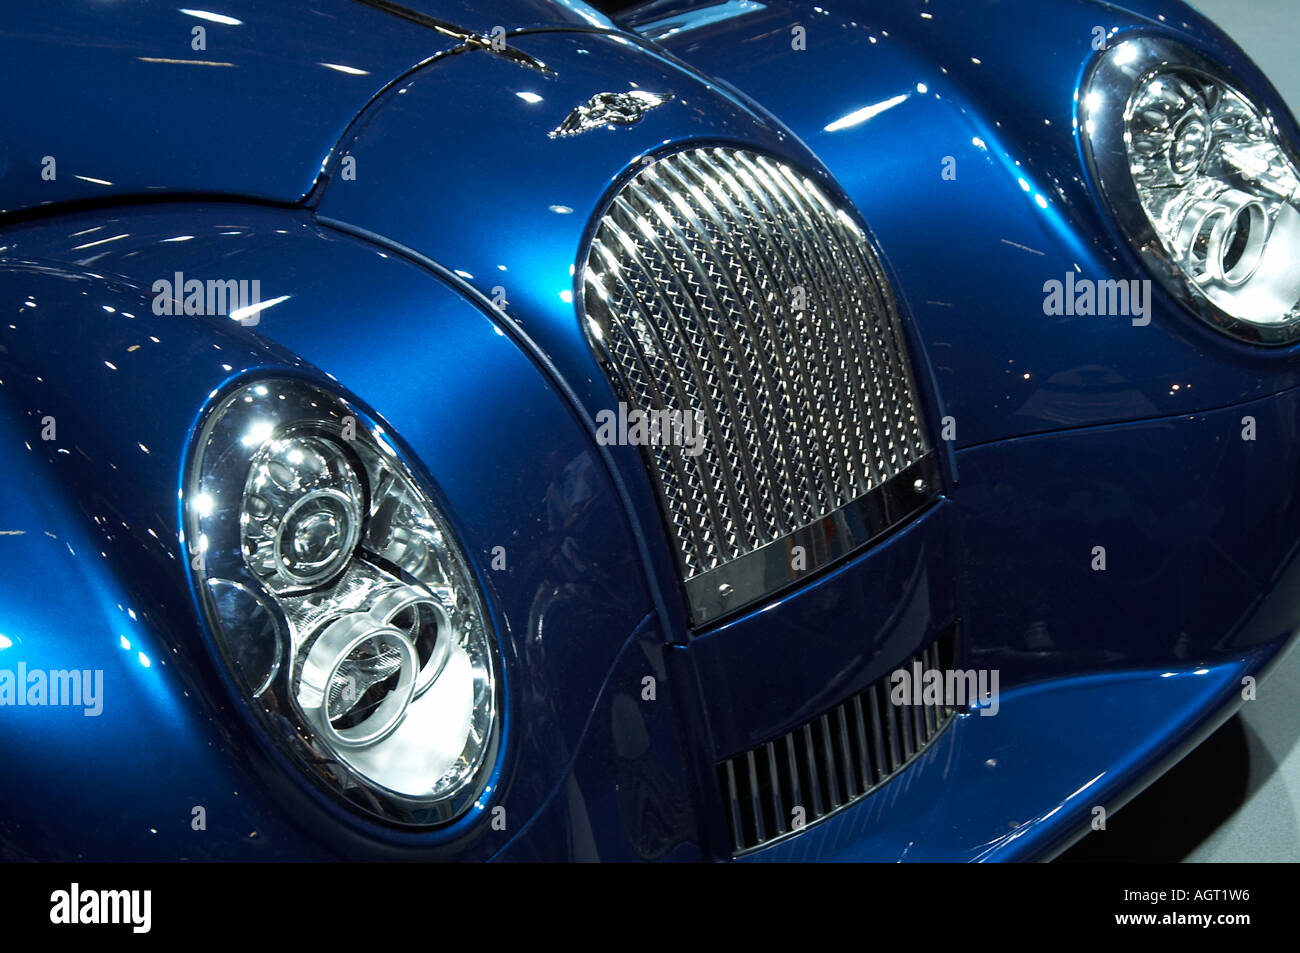 Morgan, Aero, Eight, Crosseyed, Classic, Sports, Car, Sportcar, English,  Wooden, Chassis, Ash, Traditional, Old, Fashioned,